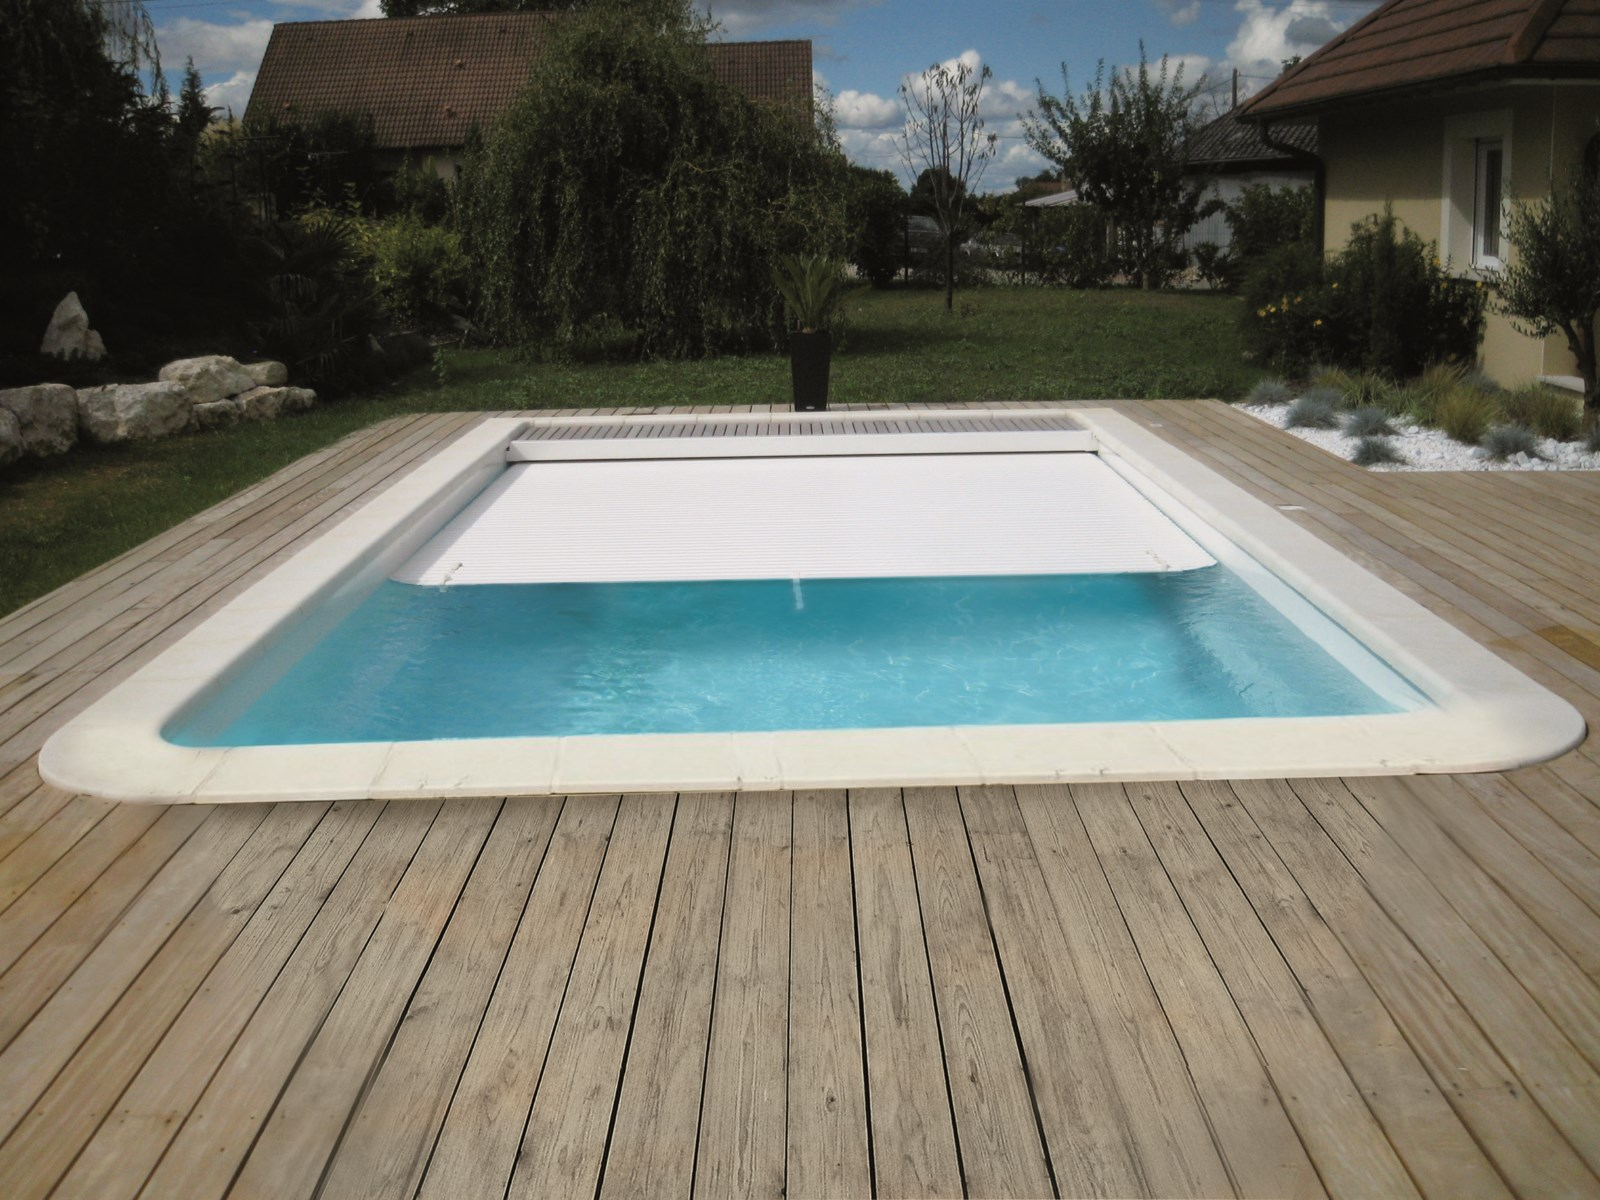 Piscine coque polyester rectangulaire mod le born o avec for Piscine coque debordement